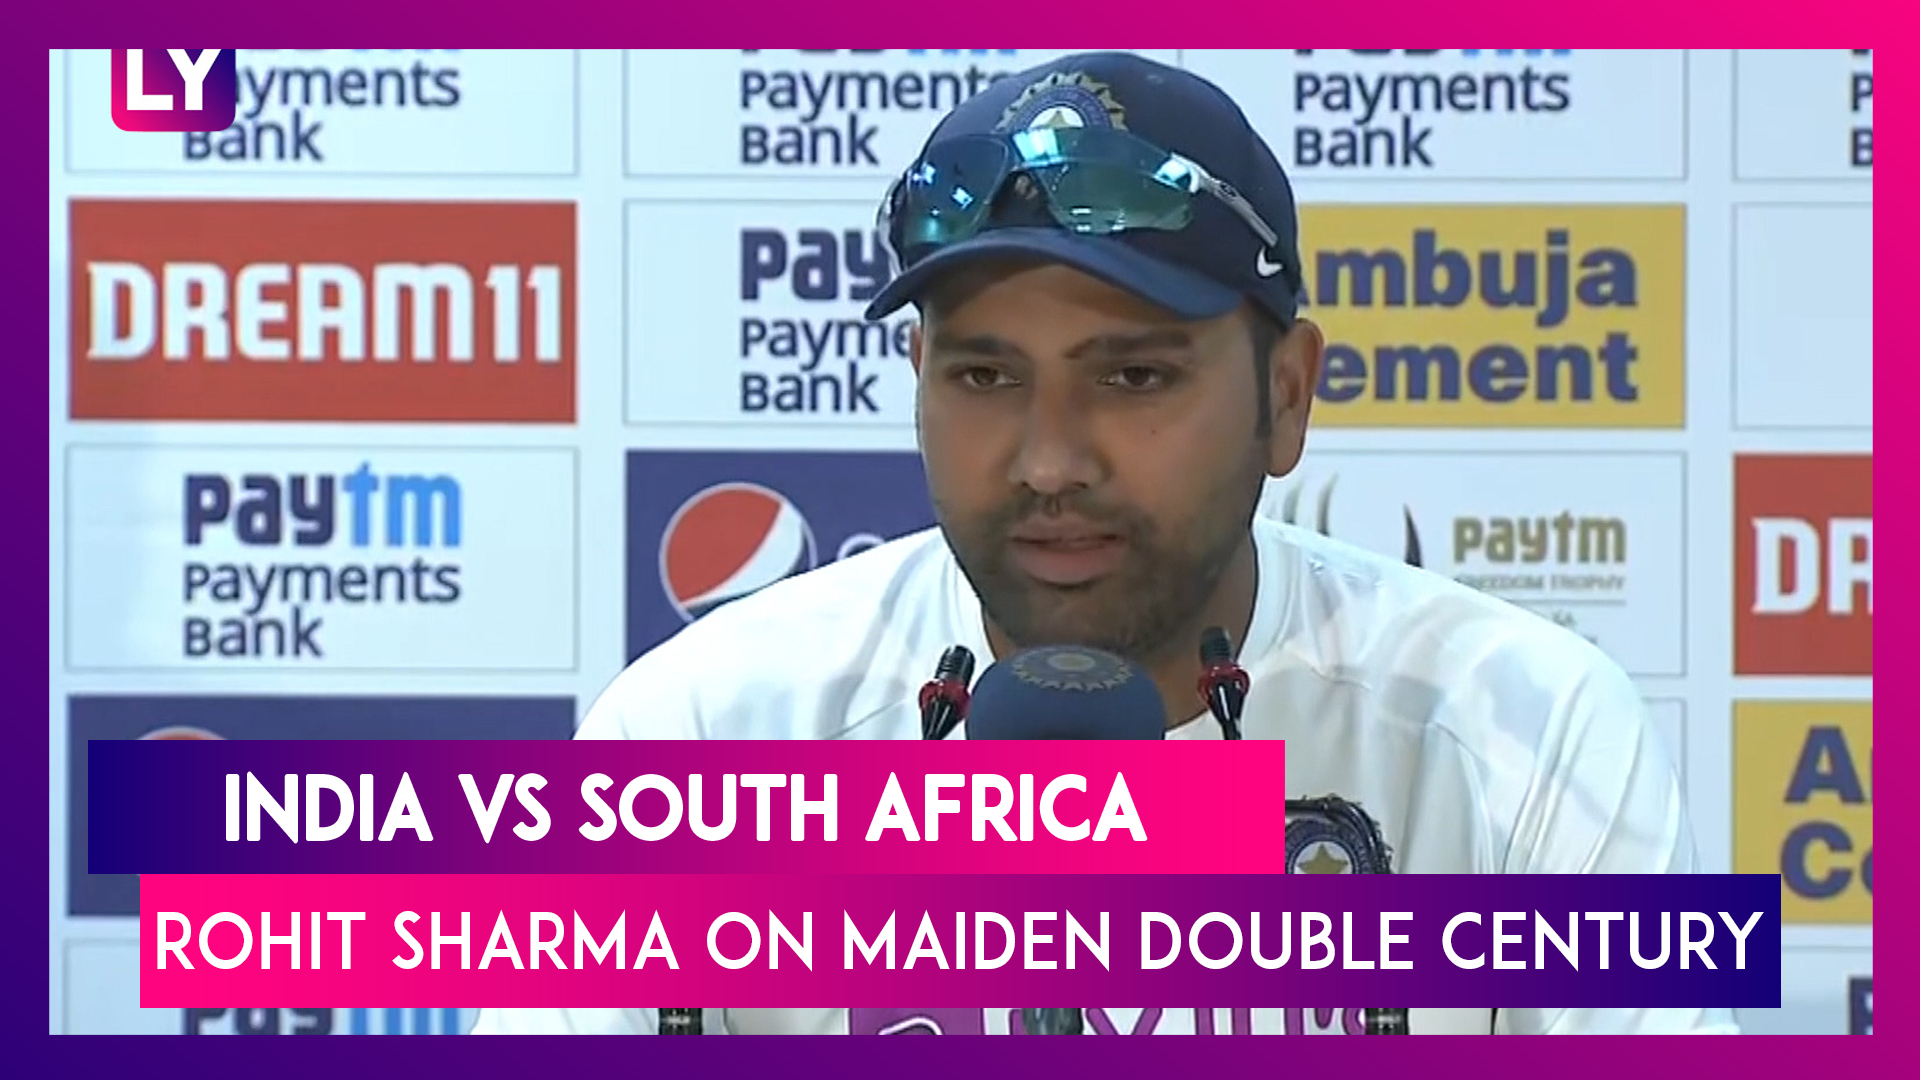 India vs South Africa: 'Most Challenging Knock For Me', Says Rohit Sharma On Maiden Double Century